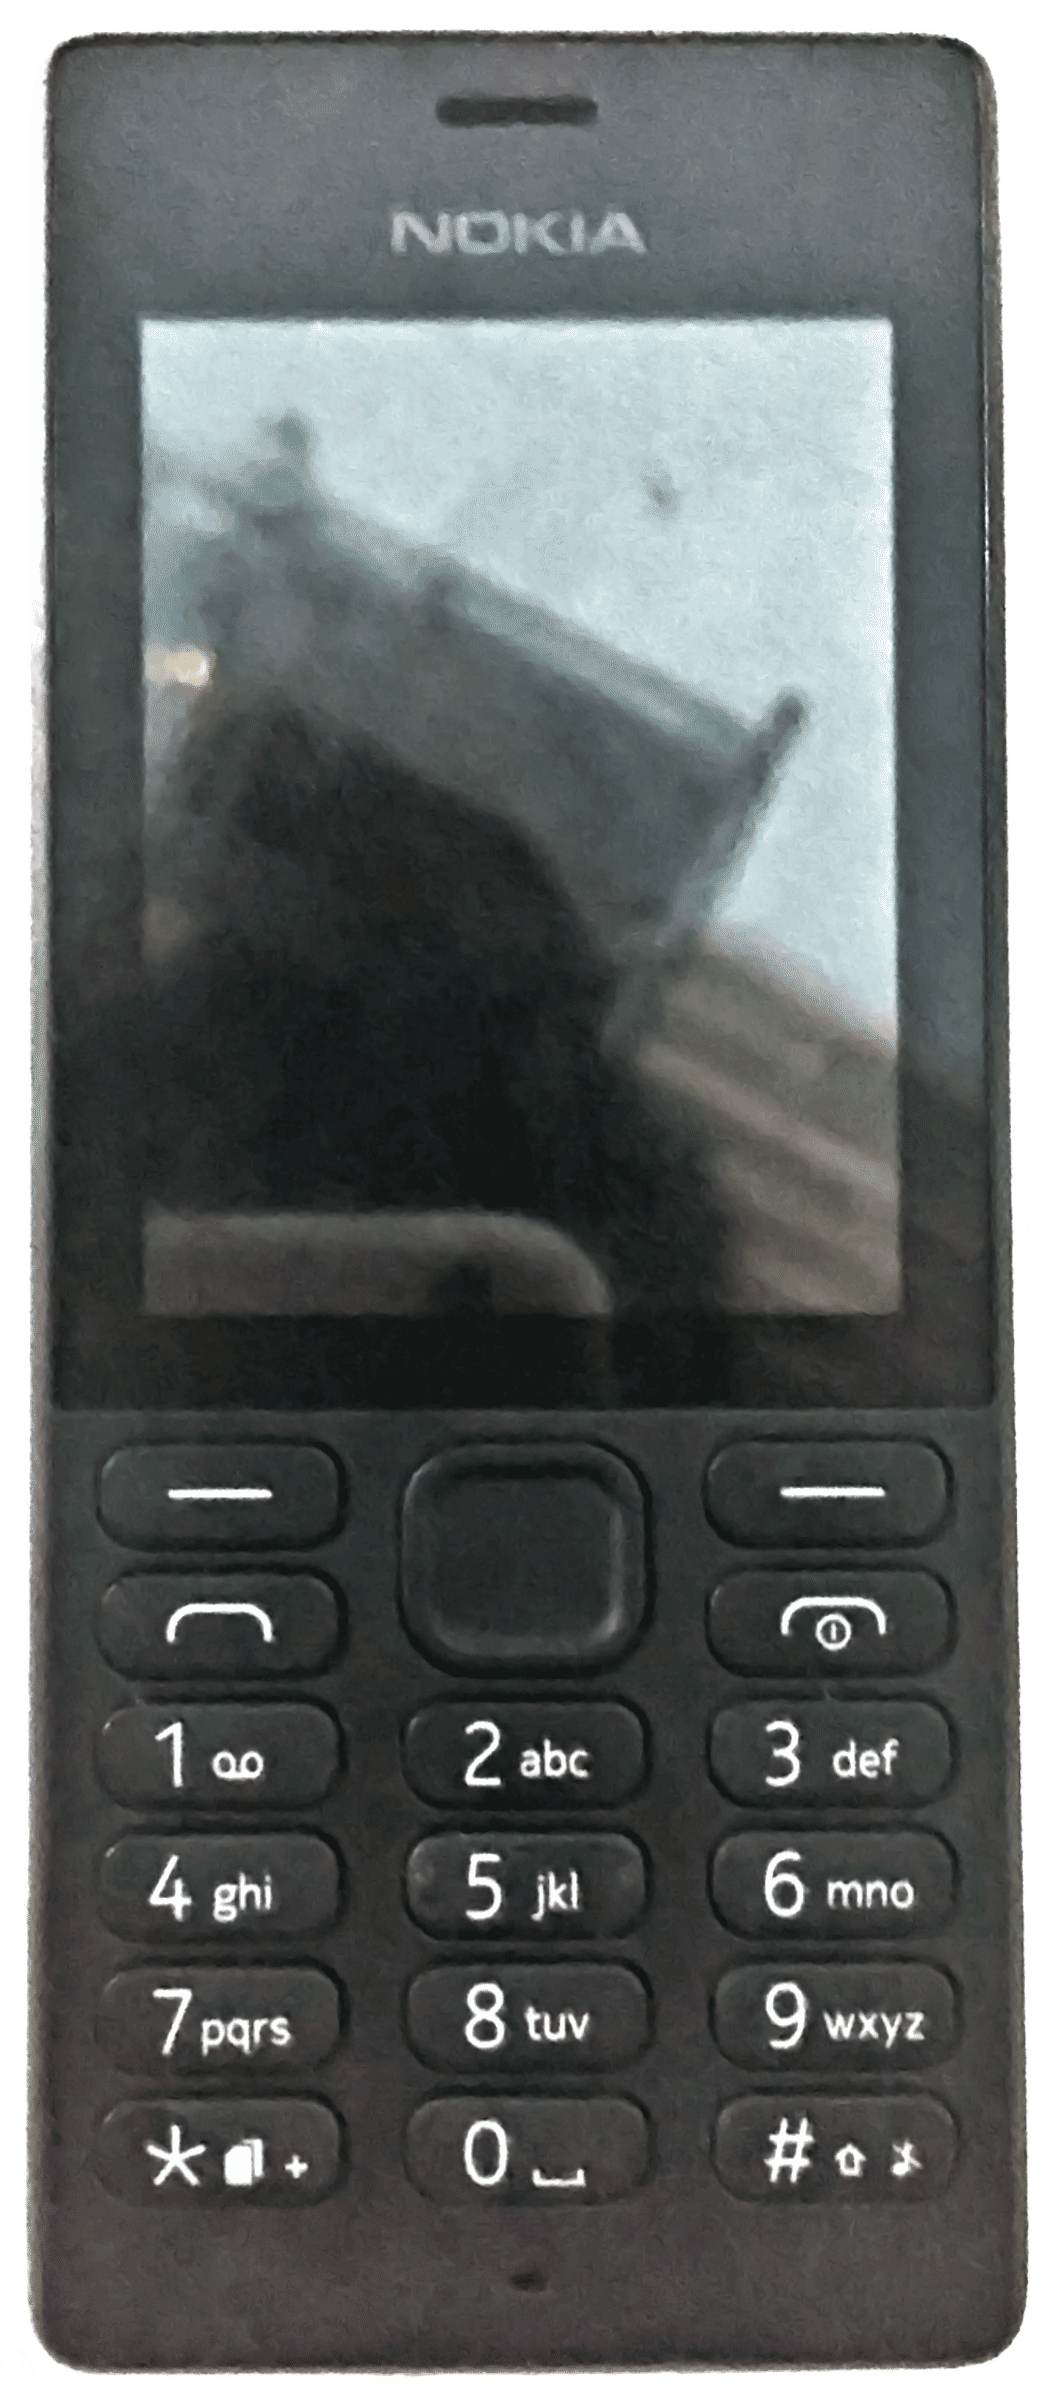 nokia 2600 classic, nokia x2-00, nokia flasher, nokia lumia with flashlight, nokia 1616 keypad problem, nokia solution, nokia 6100i, nokia x1-01 mic jumper, on nokia 1202 schematic